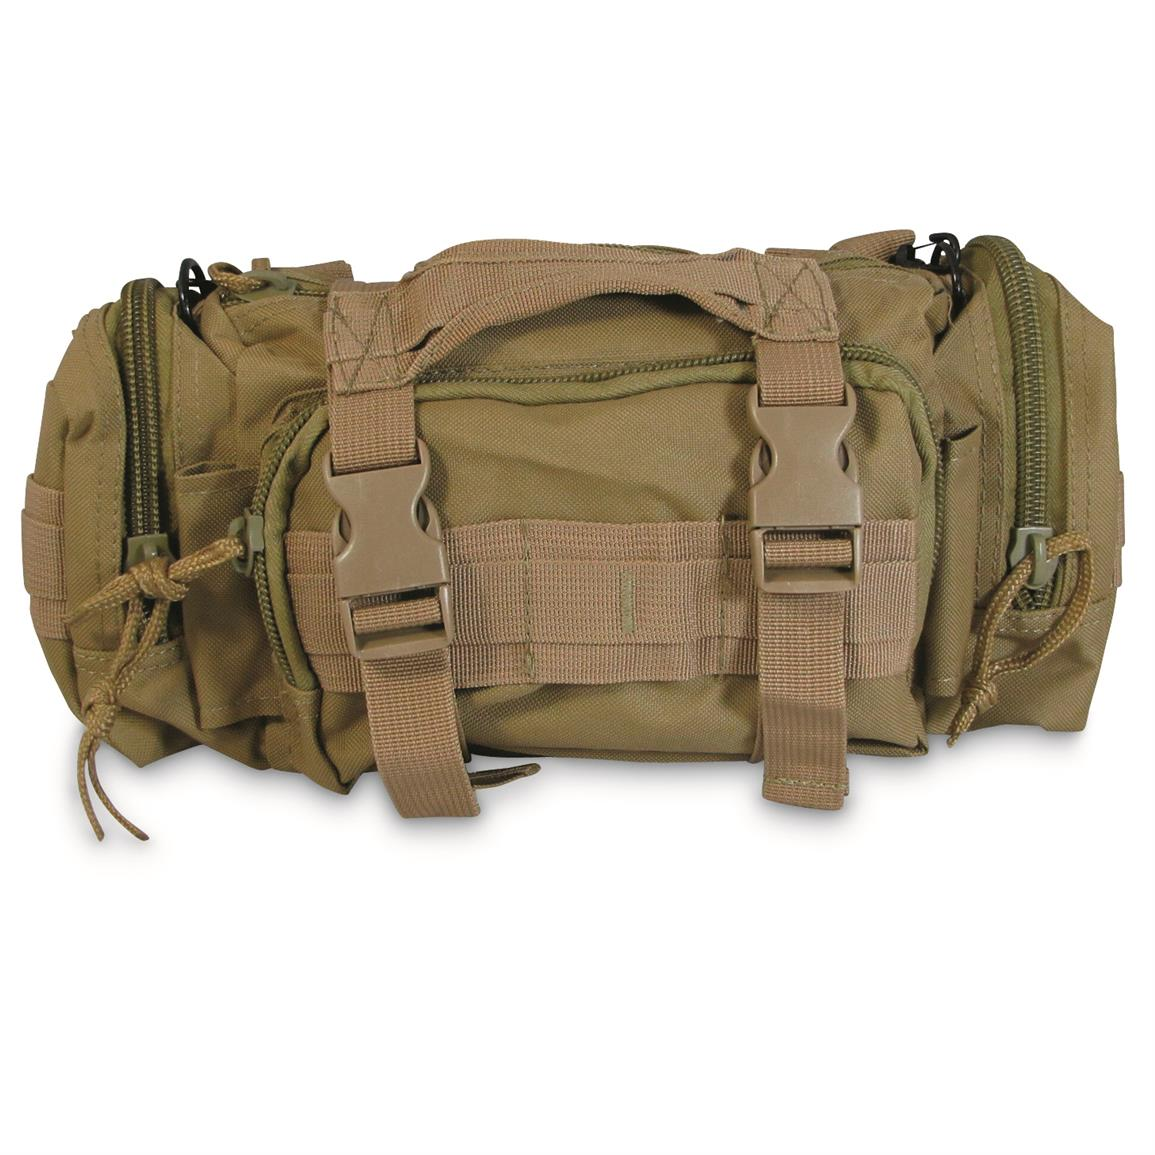 MOLLE-compatible pouch that piggybacks on the rest of your gea